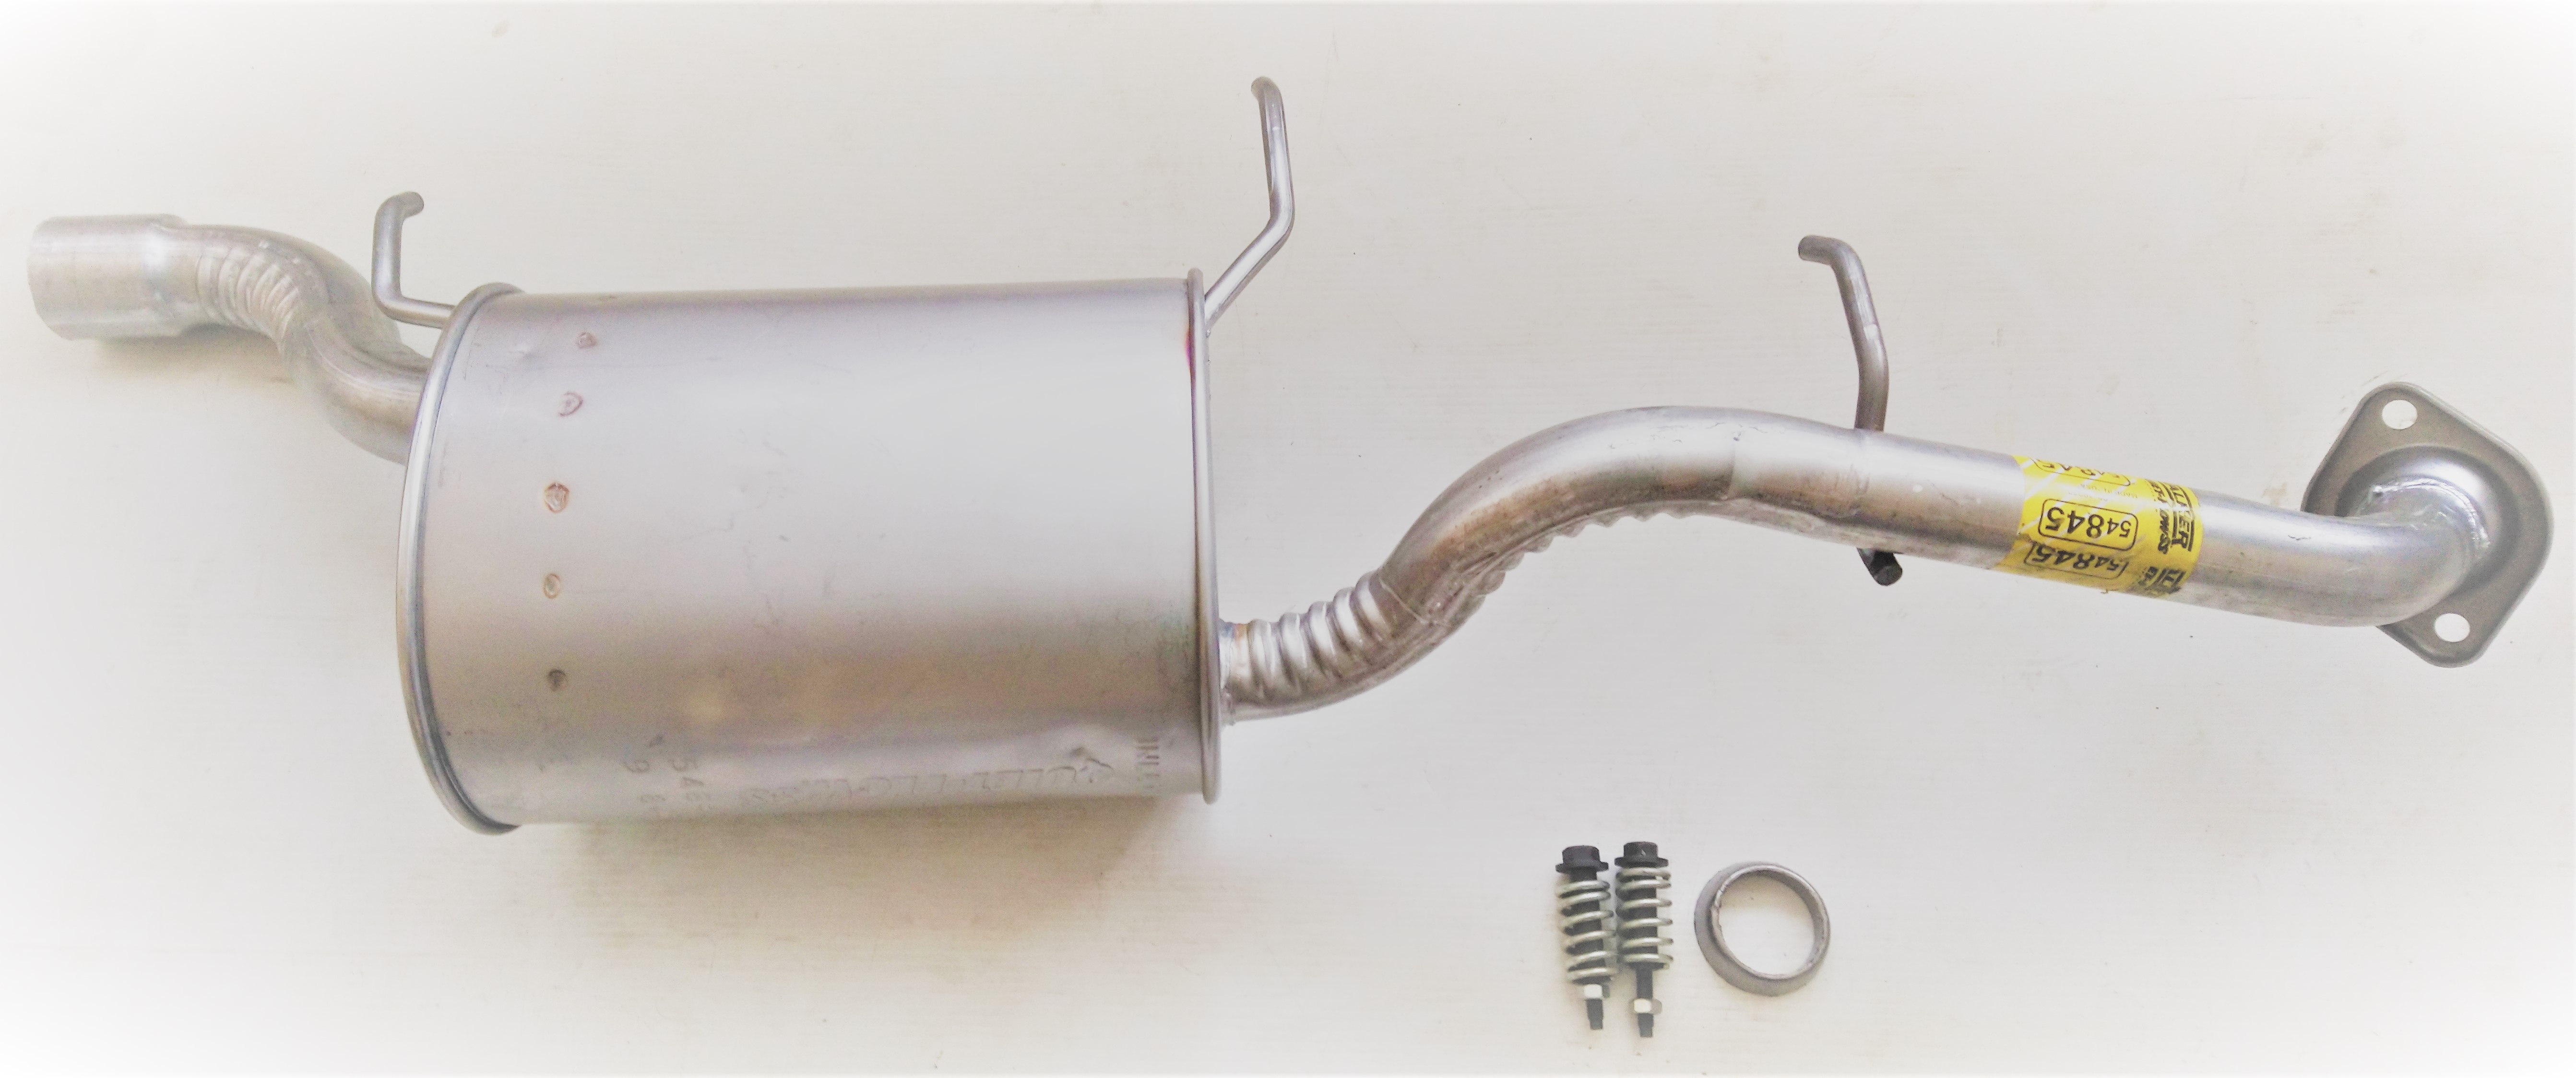 2006-2011 Acura CSX 2.0L I4 Exhaust Direct-Fit Catalytic Converter OBDII